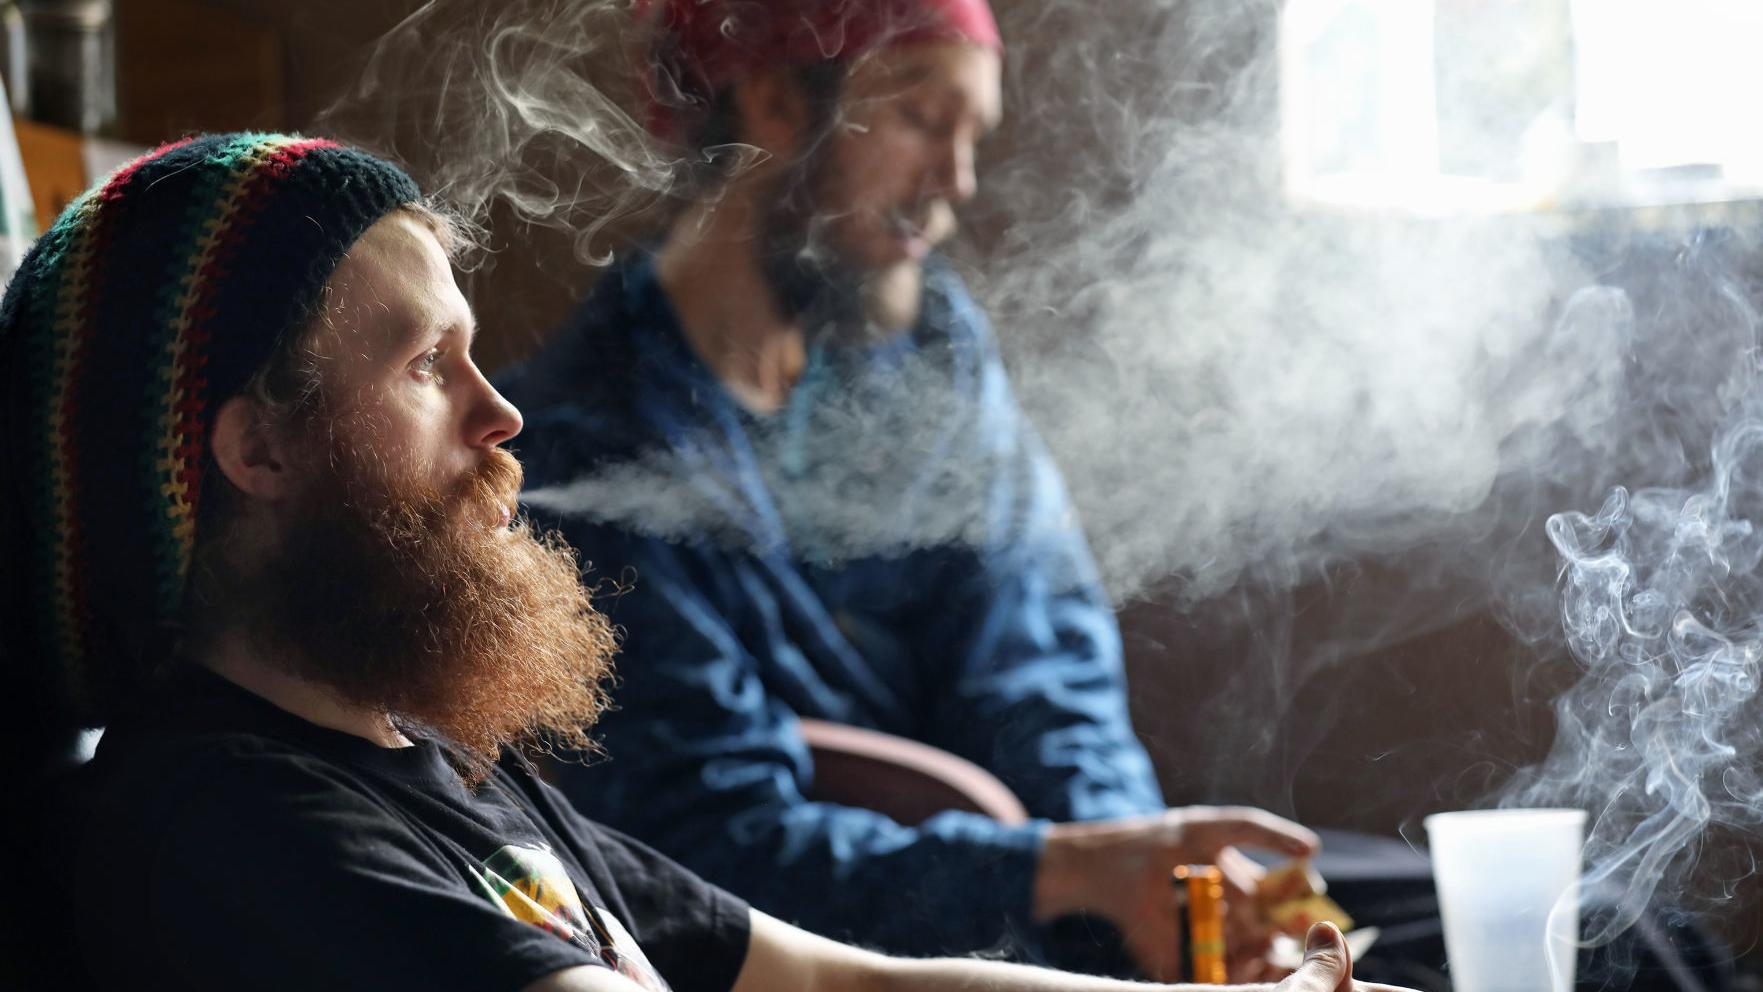 Rastafarian church in Downtown Madison distributes cannabis as city tries to stop it